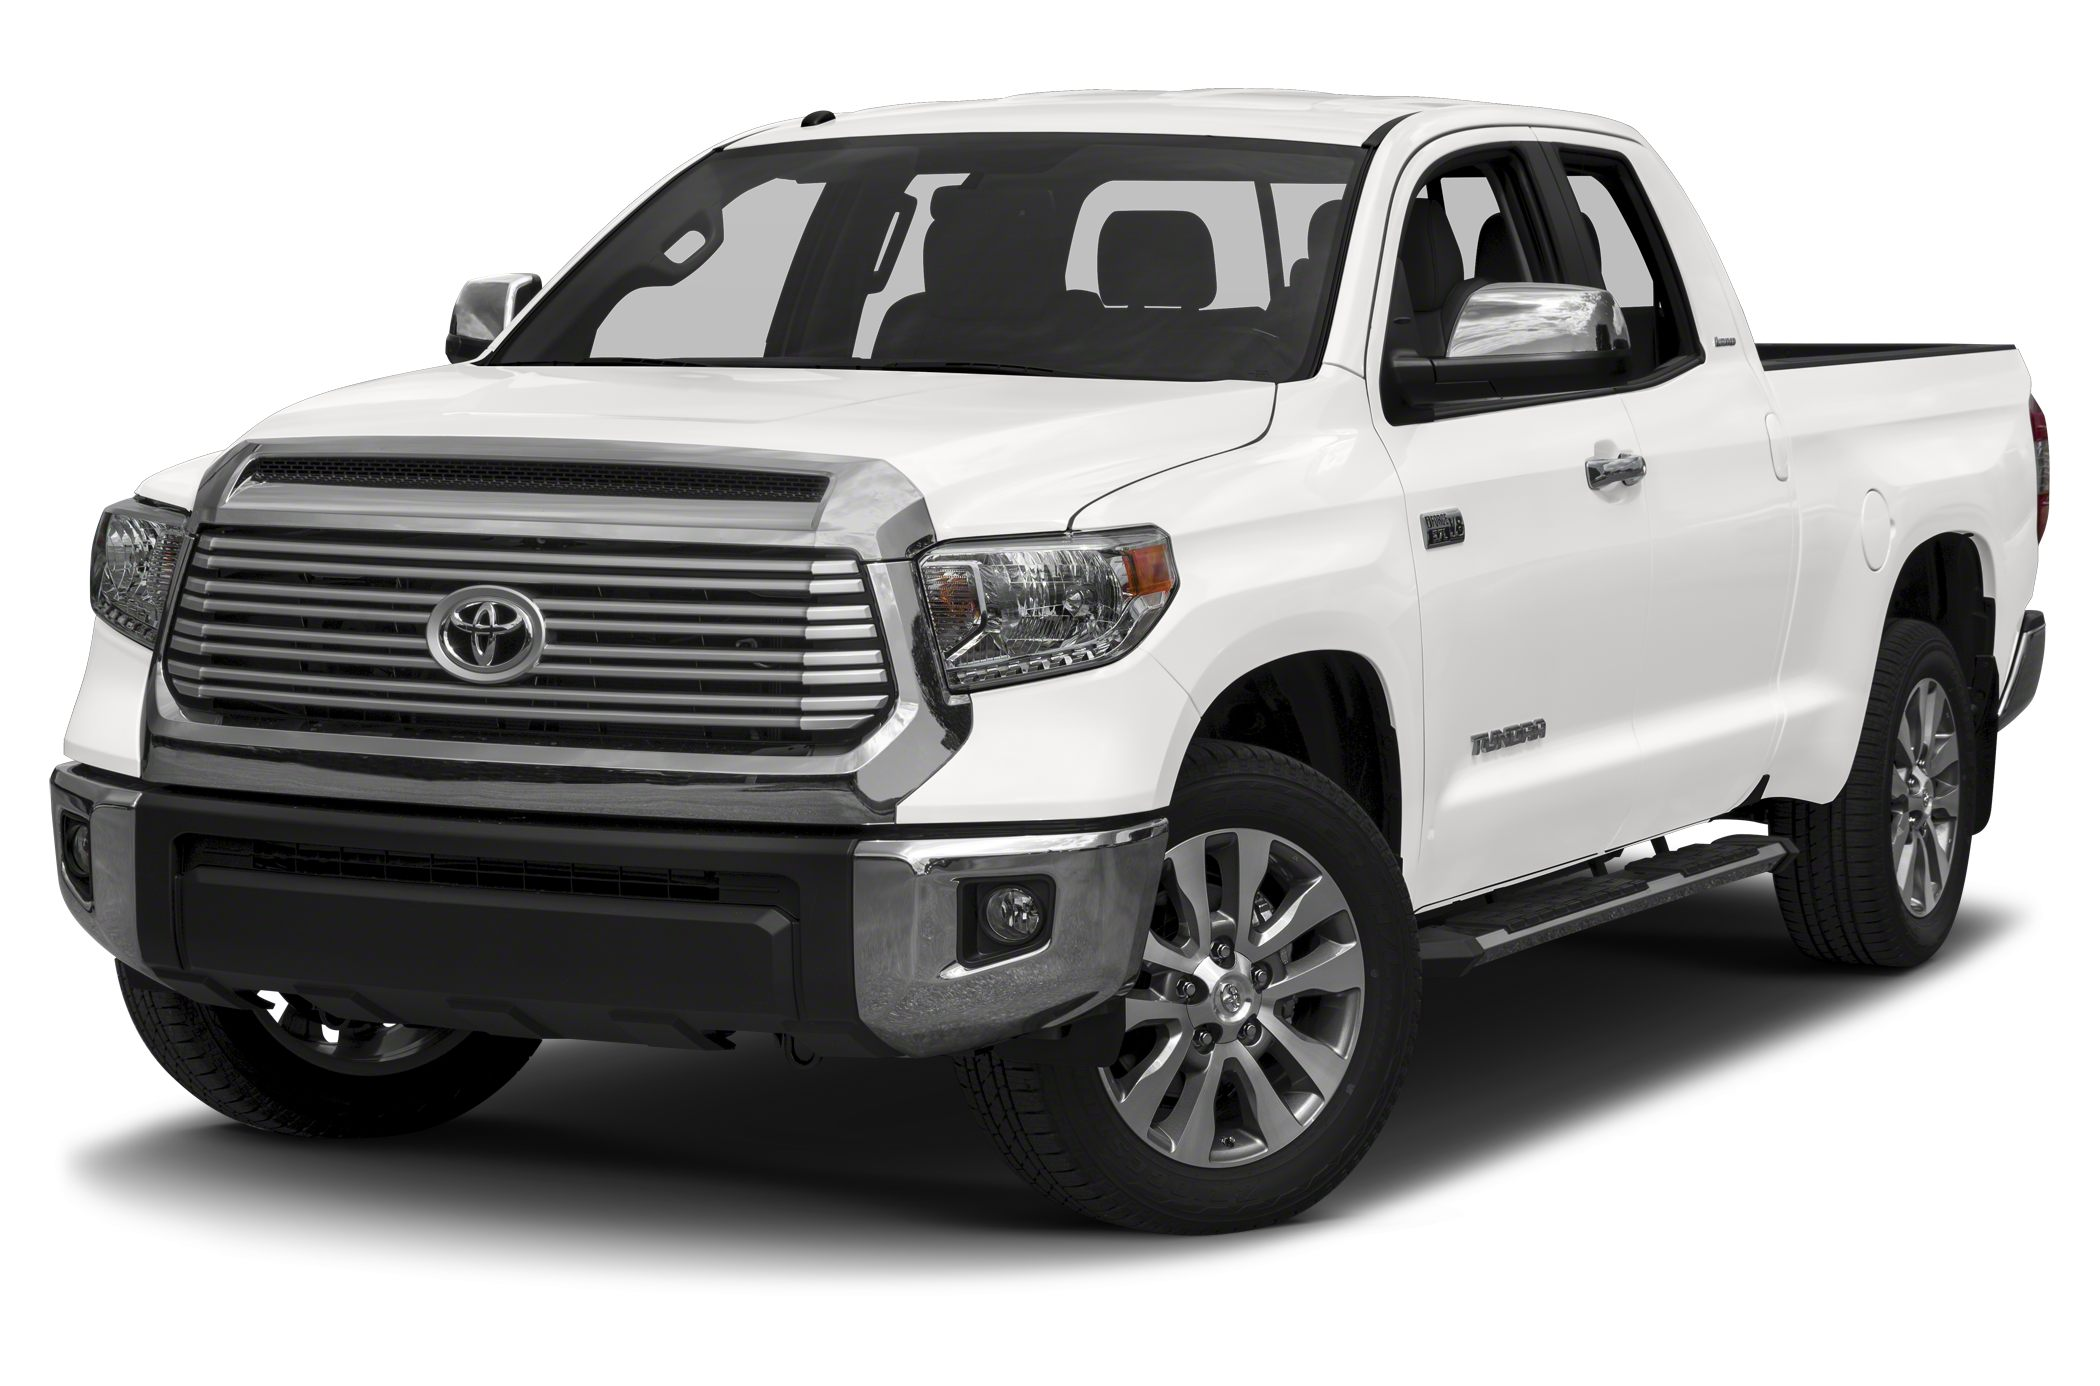 2014 Toyota Tundra Limited 1 OWNER CLEAN CARFAX LIMITED MODEL NAVIGATION Get the NEW look